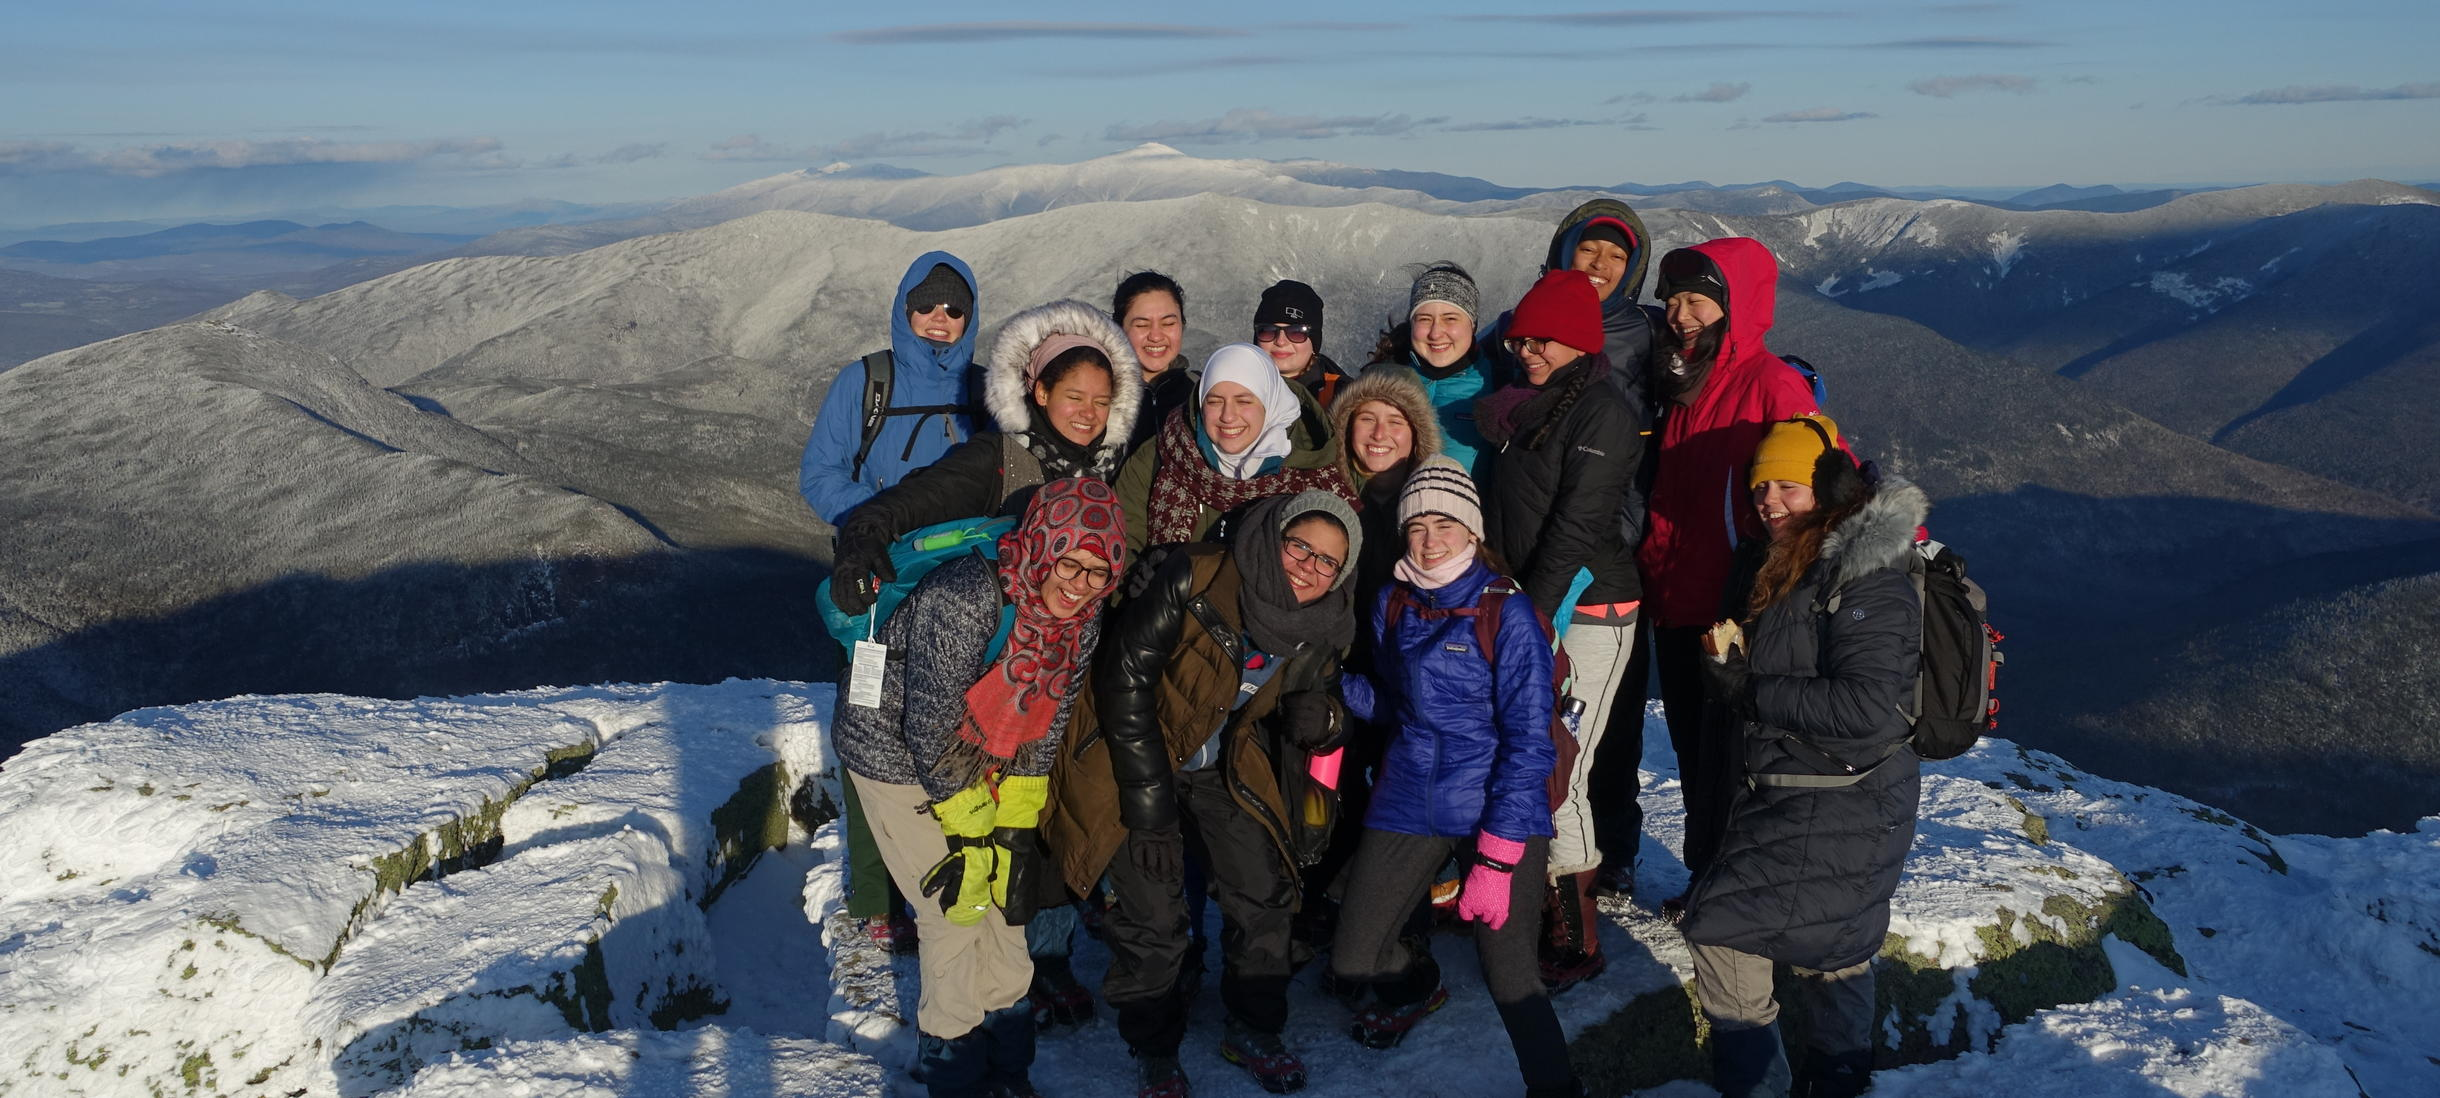 Group of students smiling on top of mountain